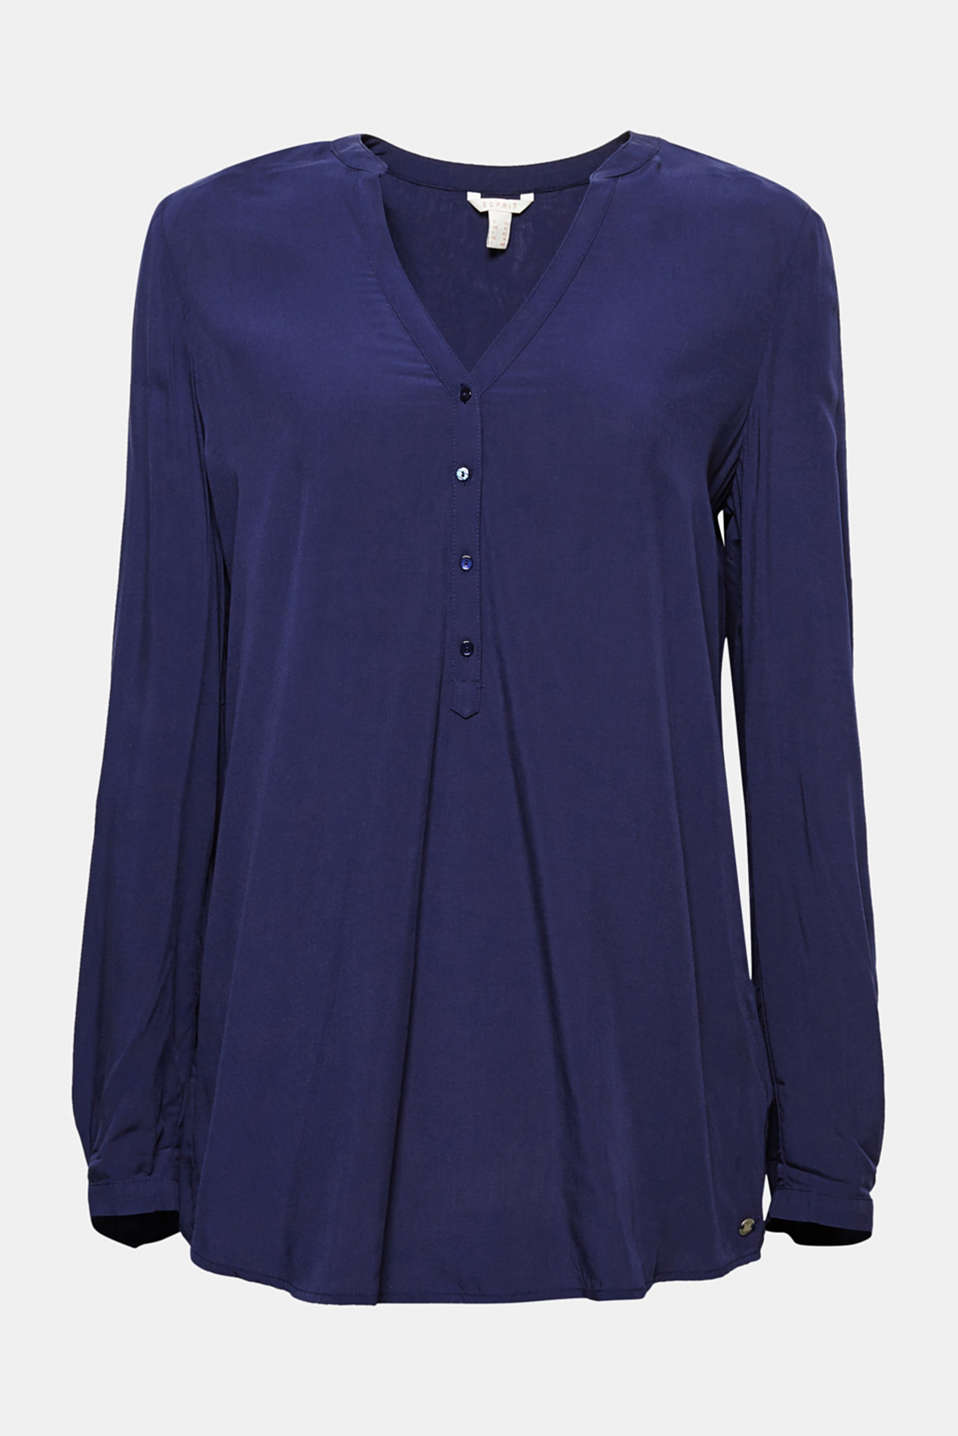 You can never get enough shirt blouses like this one: flowing, casual, versatile and with adjustable sleeve lengths!